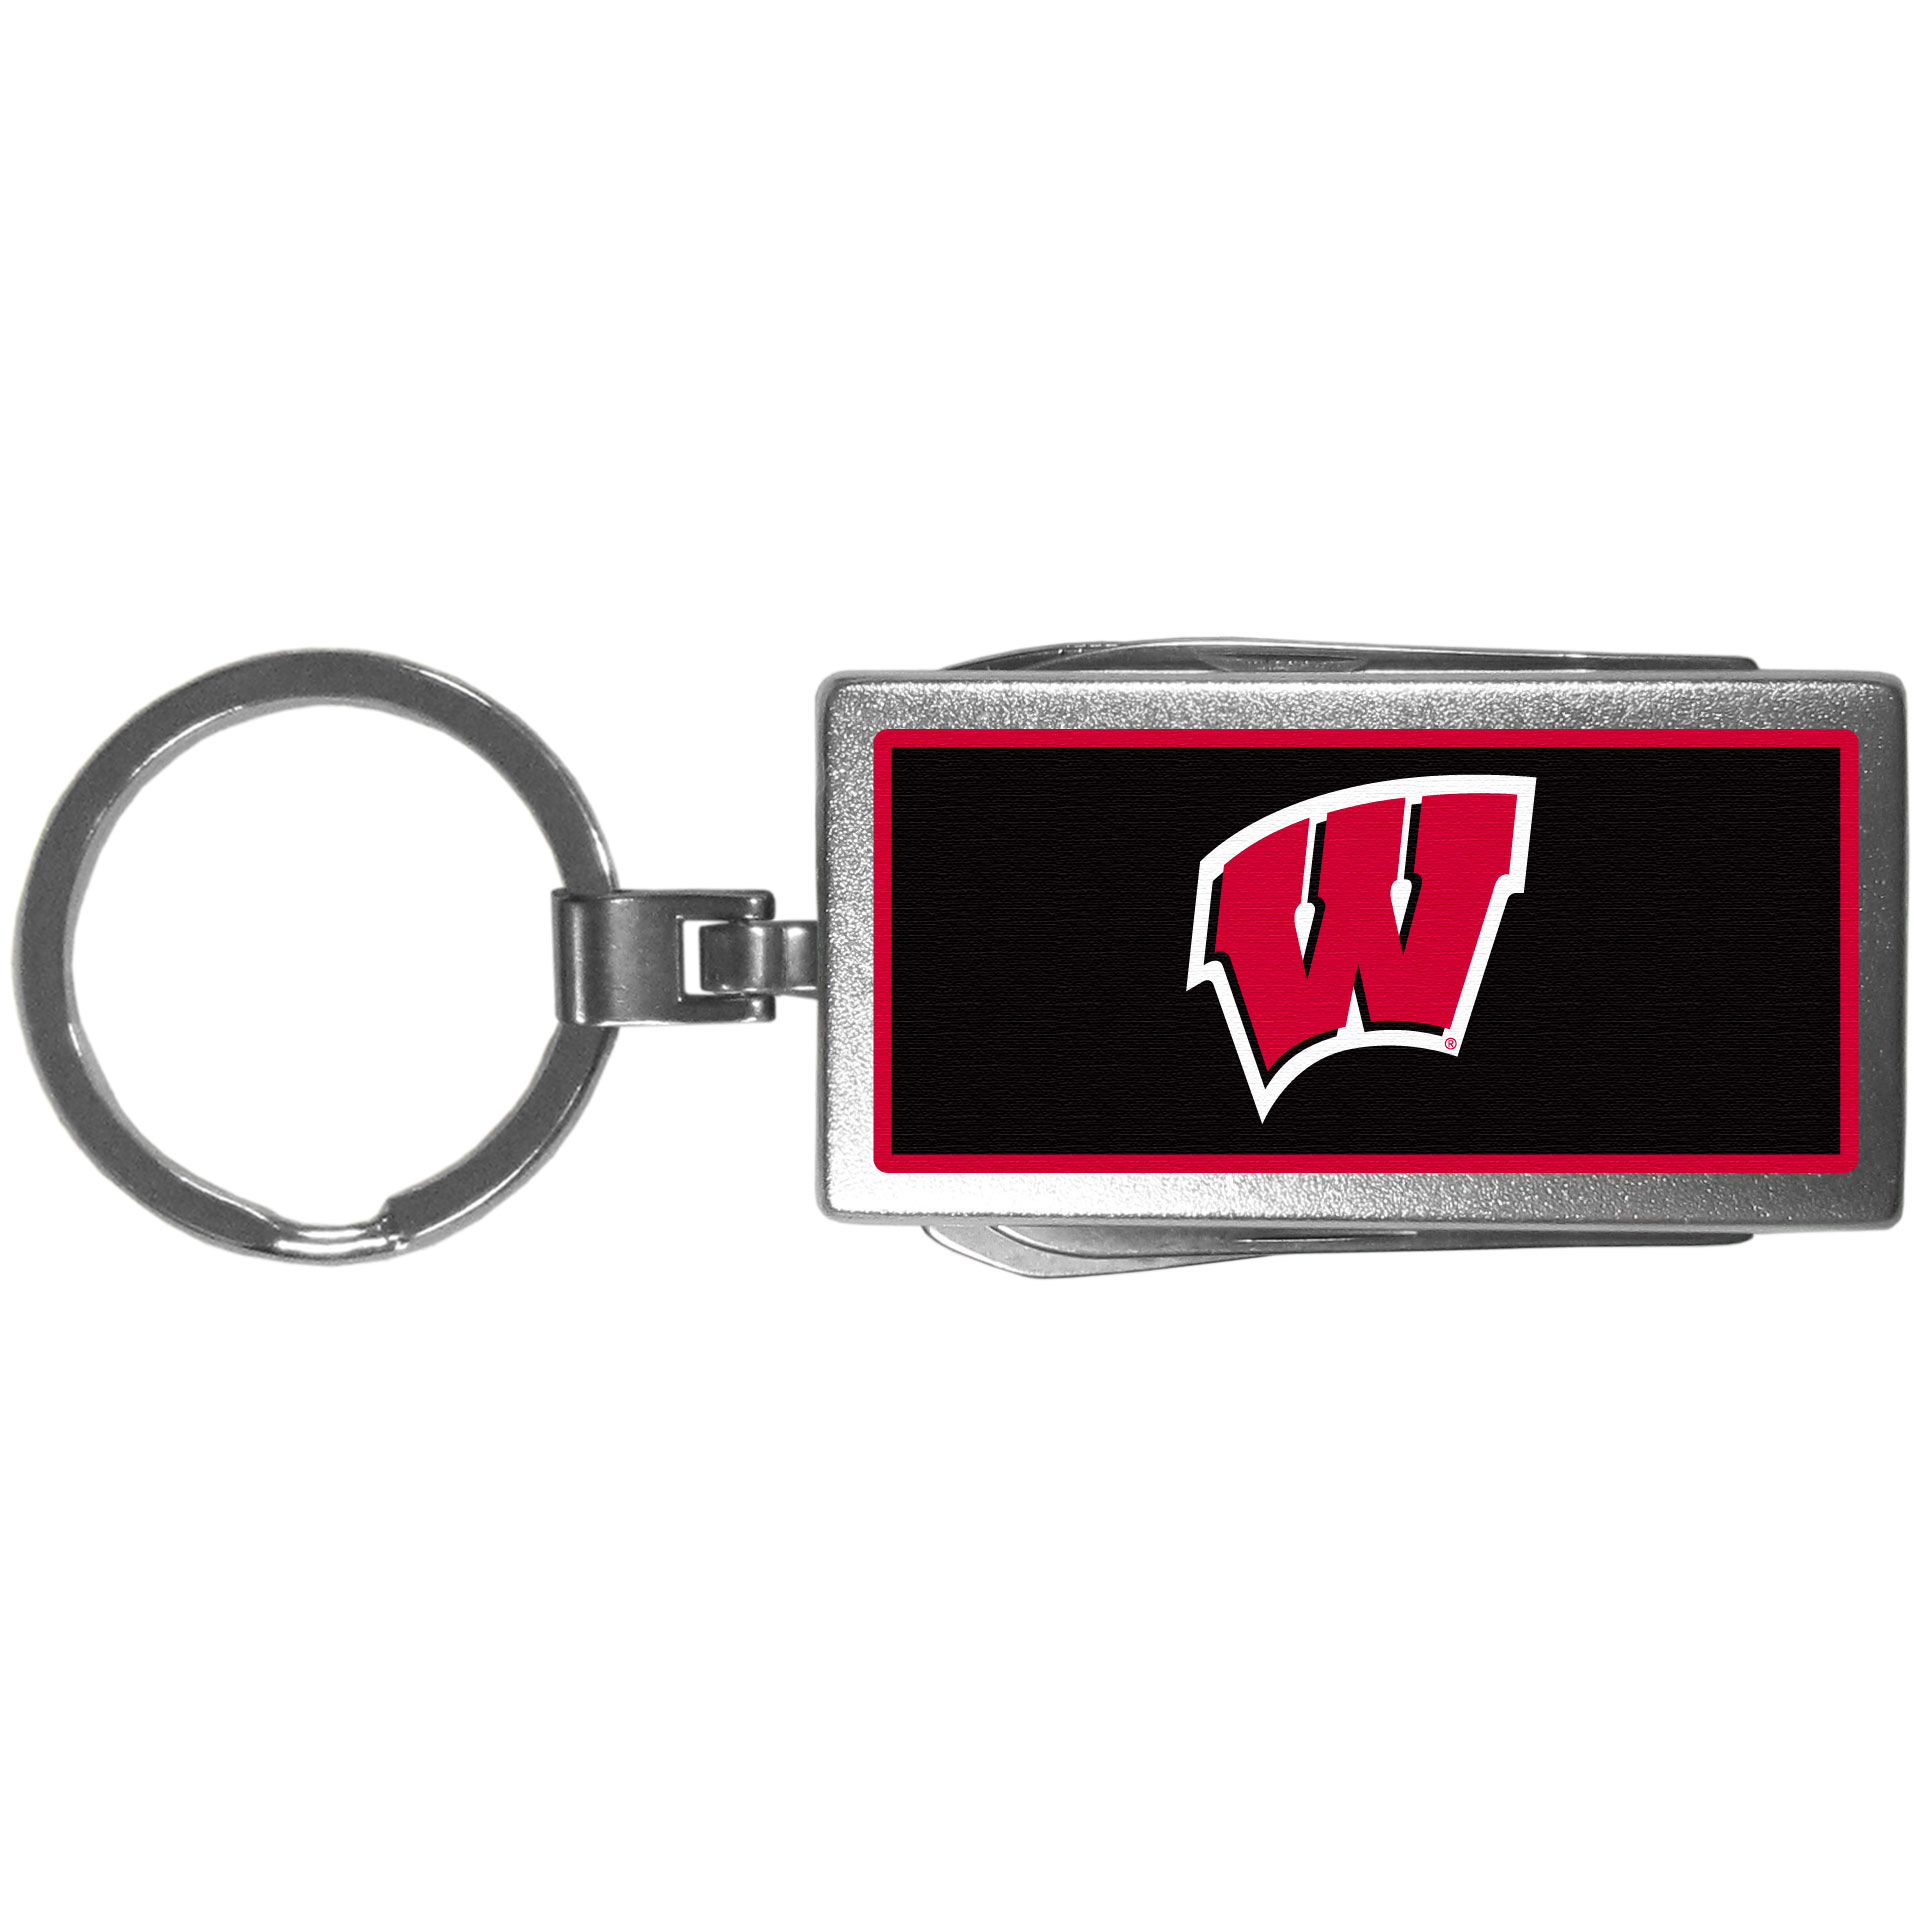 Wisconsin Badgers Multi-tool Key Chain, Logo - Be the hero at the tailgate, camping, or on a Friday night with your Wisconsin Badgers Multi-Tool Keychain which comes complete with bottle opener, scissors, knife, nail file and screw driver. Be it opening a package or a beverage Siskiyou's Multi-Tool Keychain goes wherever your keys do. The keychain hangs at 4 inches long when closed.